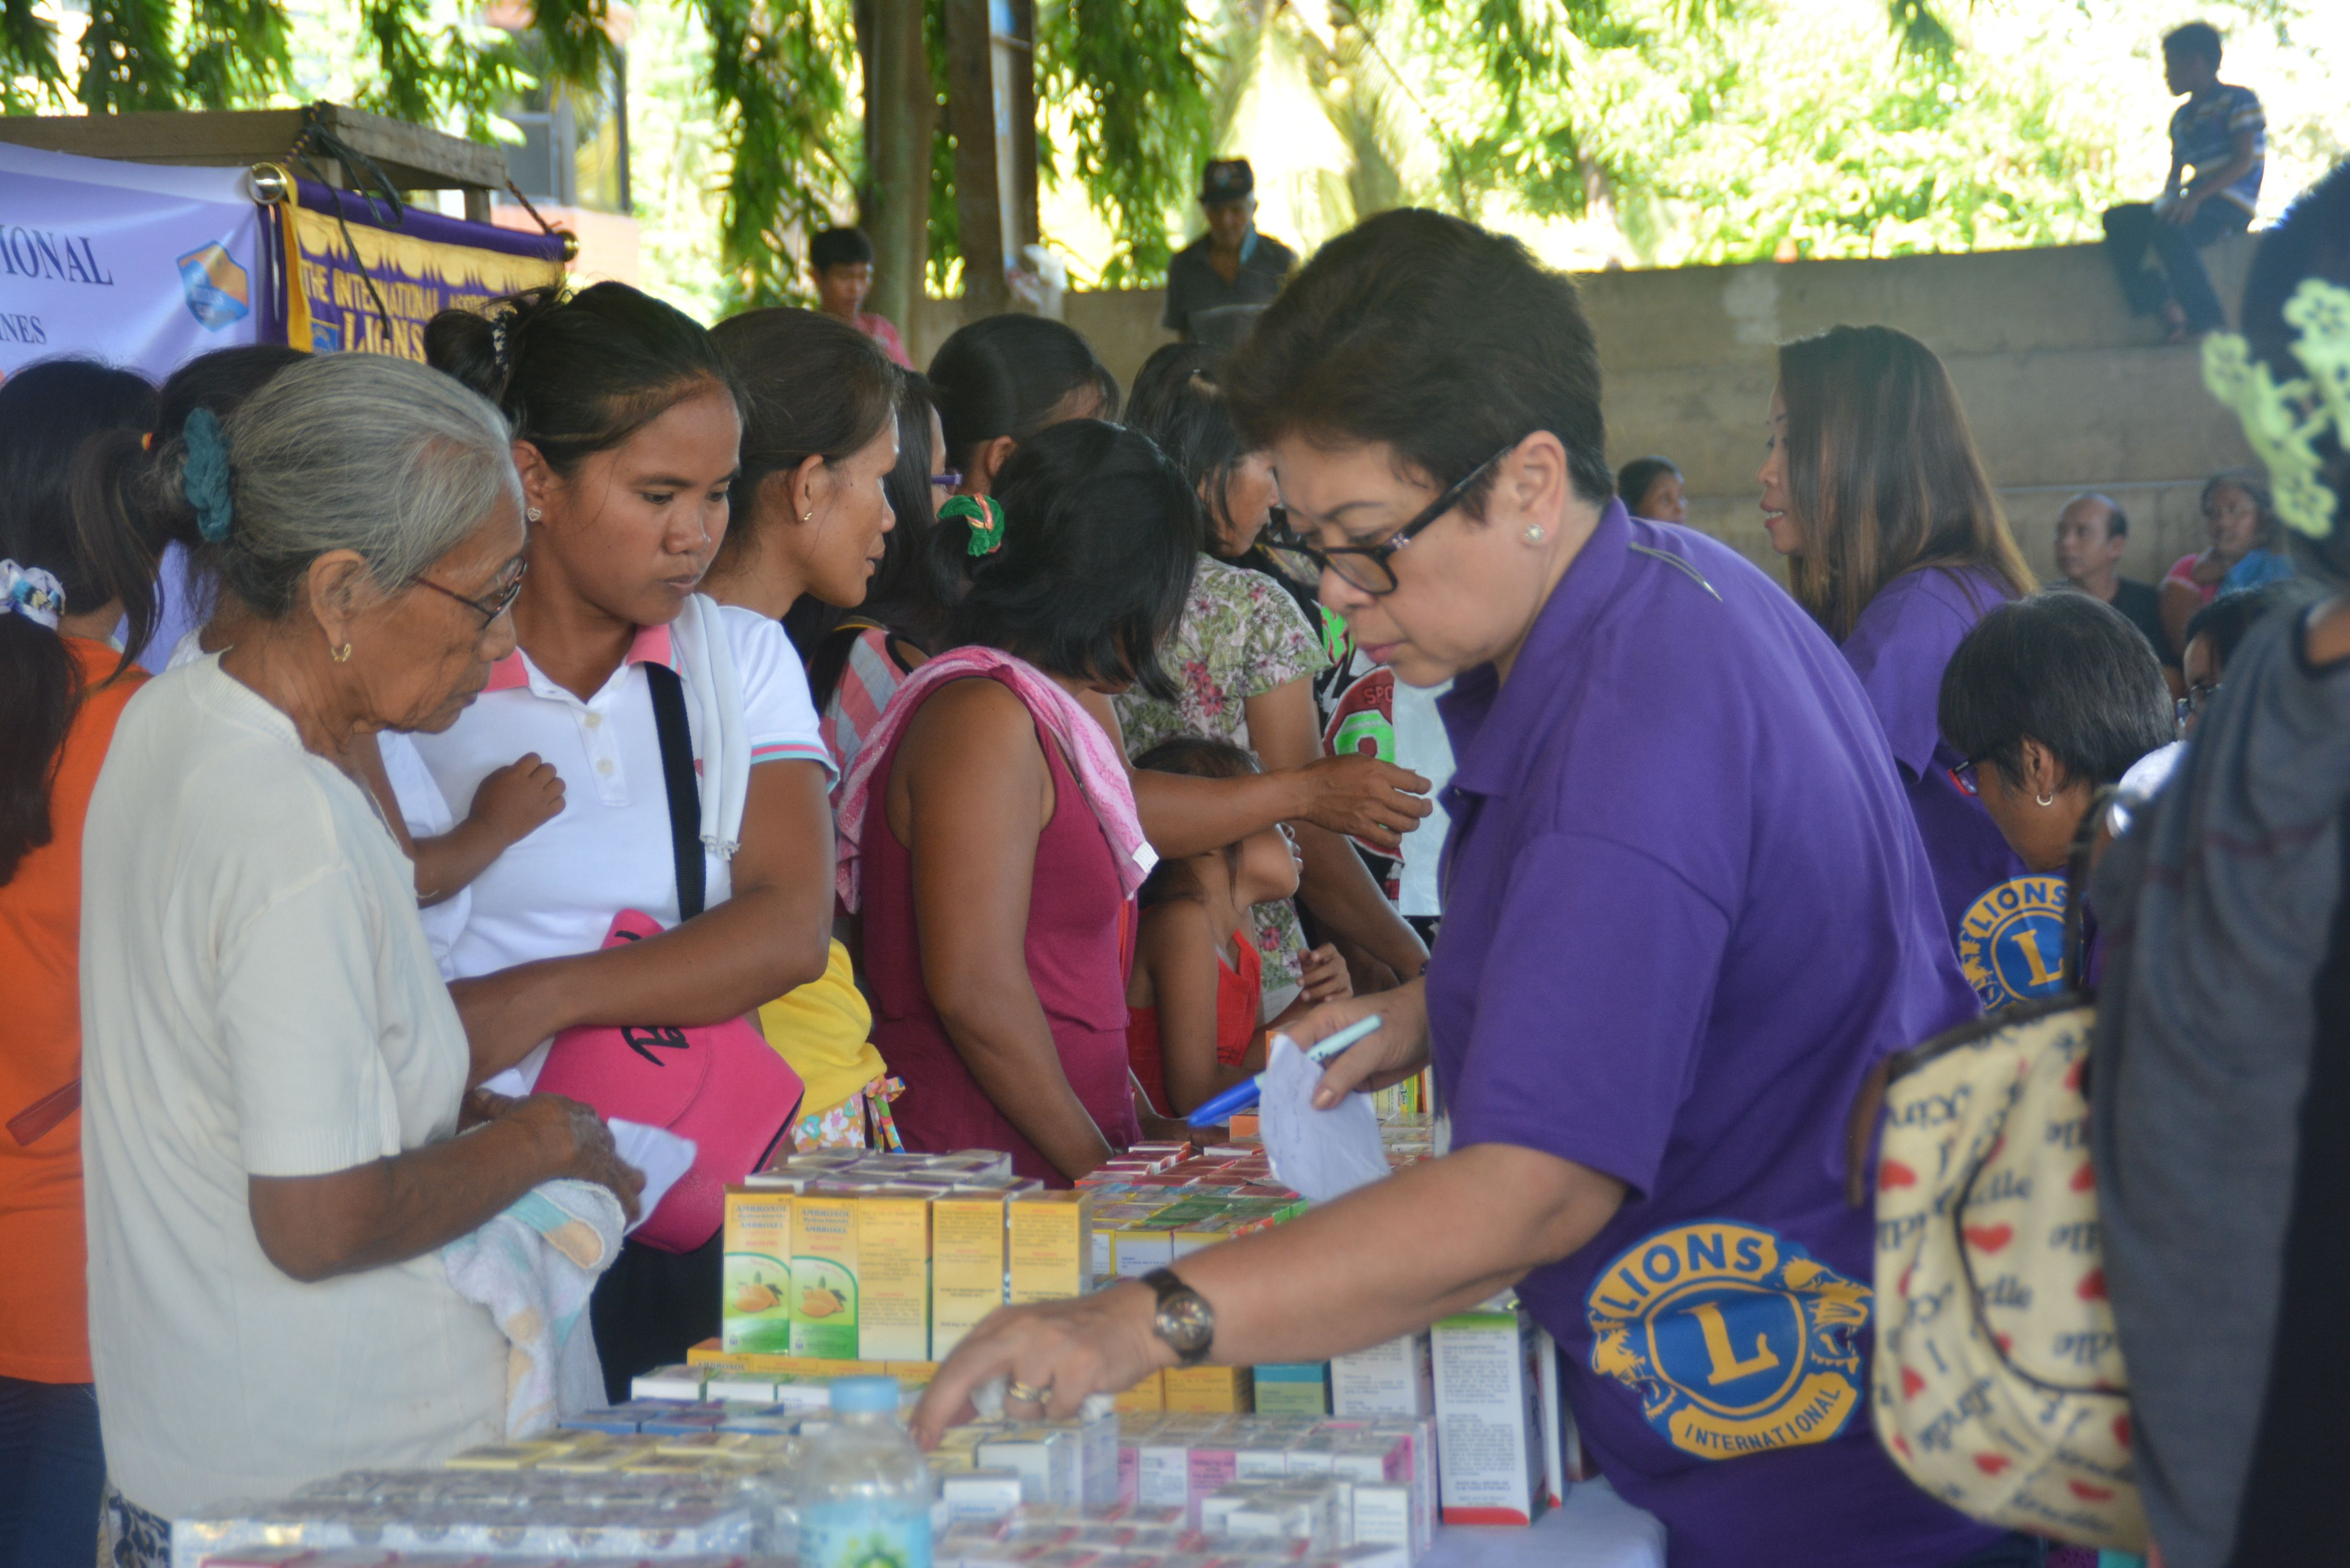 Candon City (Philippines) provided free health